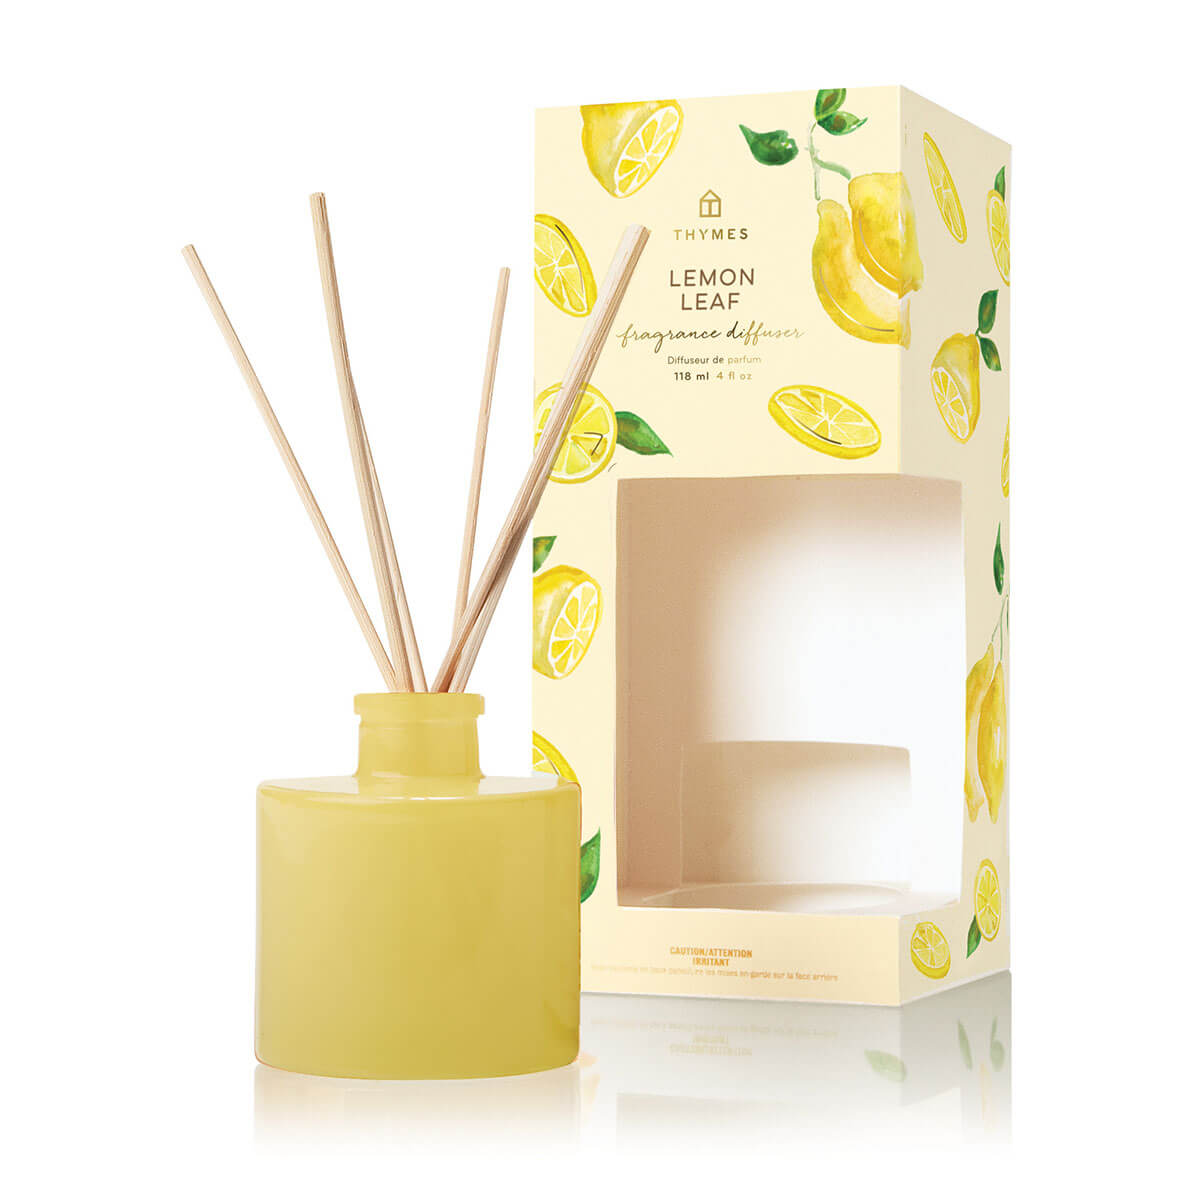 Lemon Leaf Reed Diffuser, Petite, 4.0 fl oz